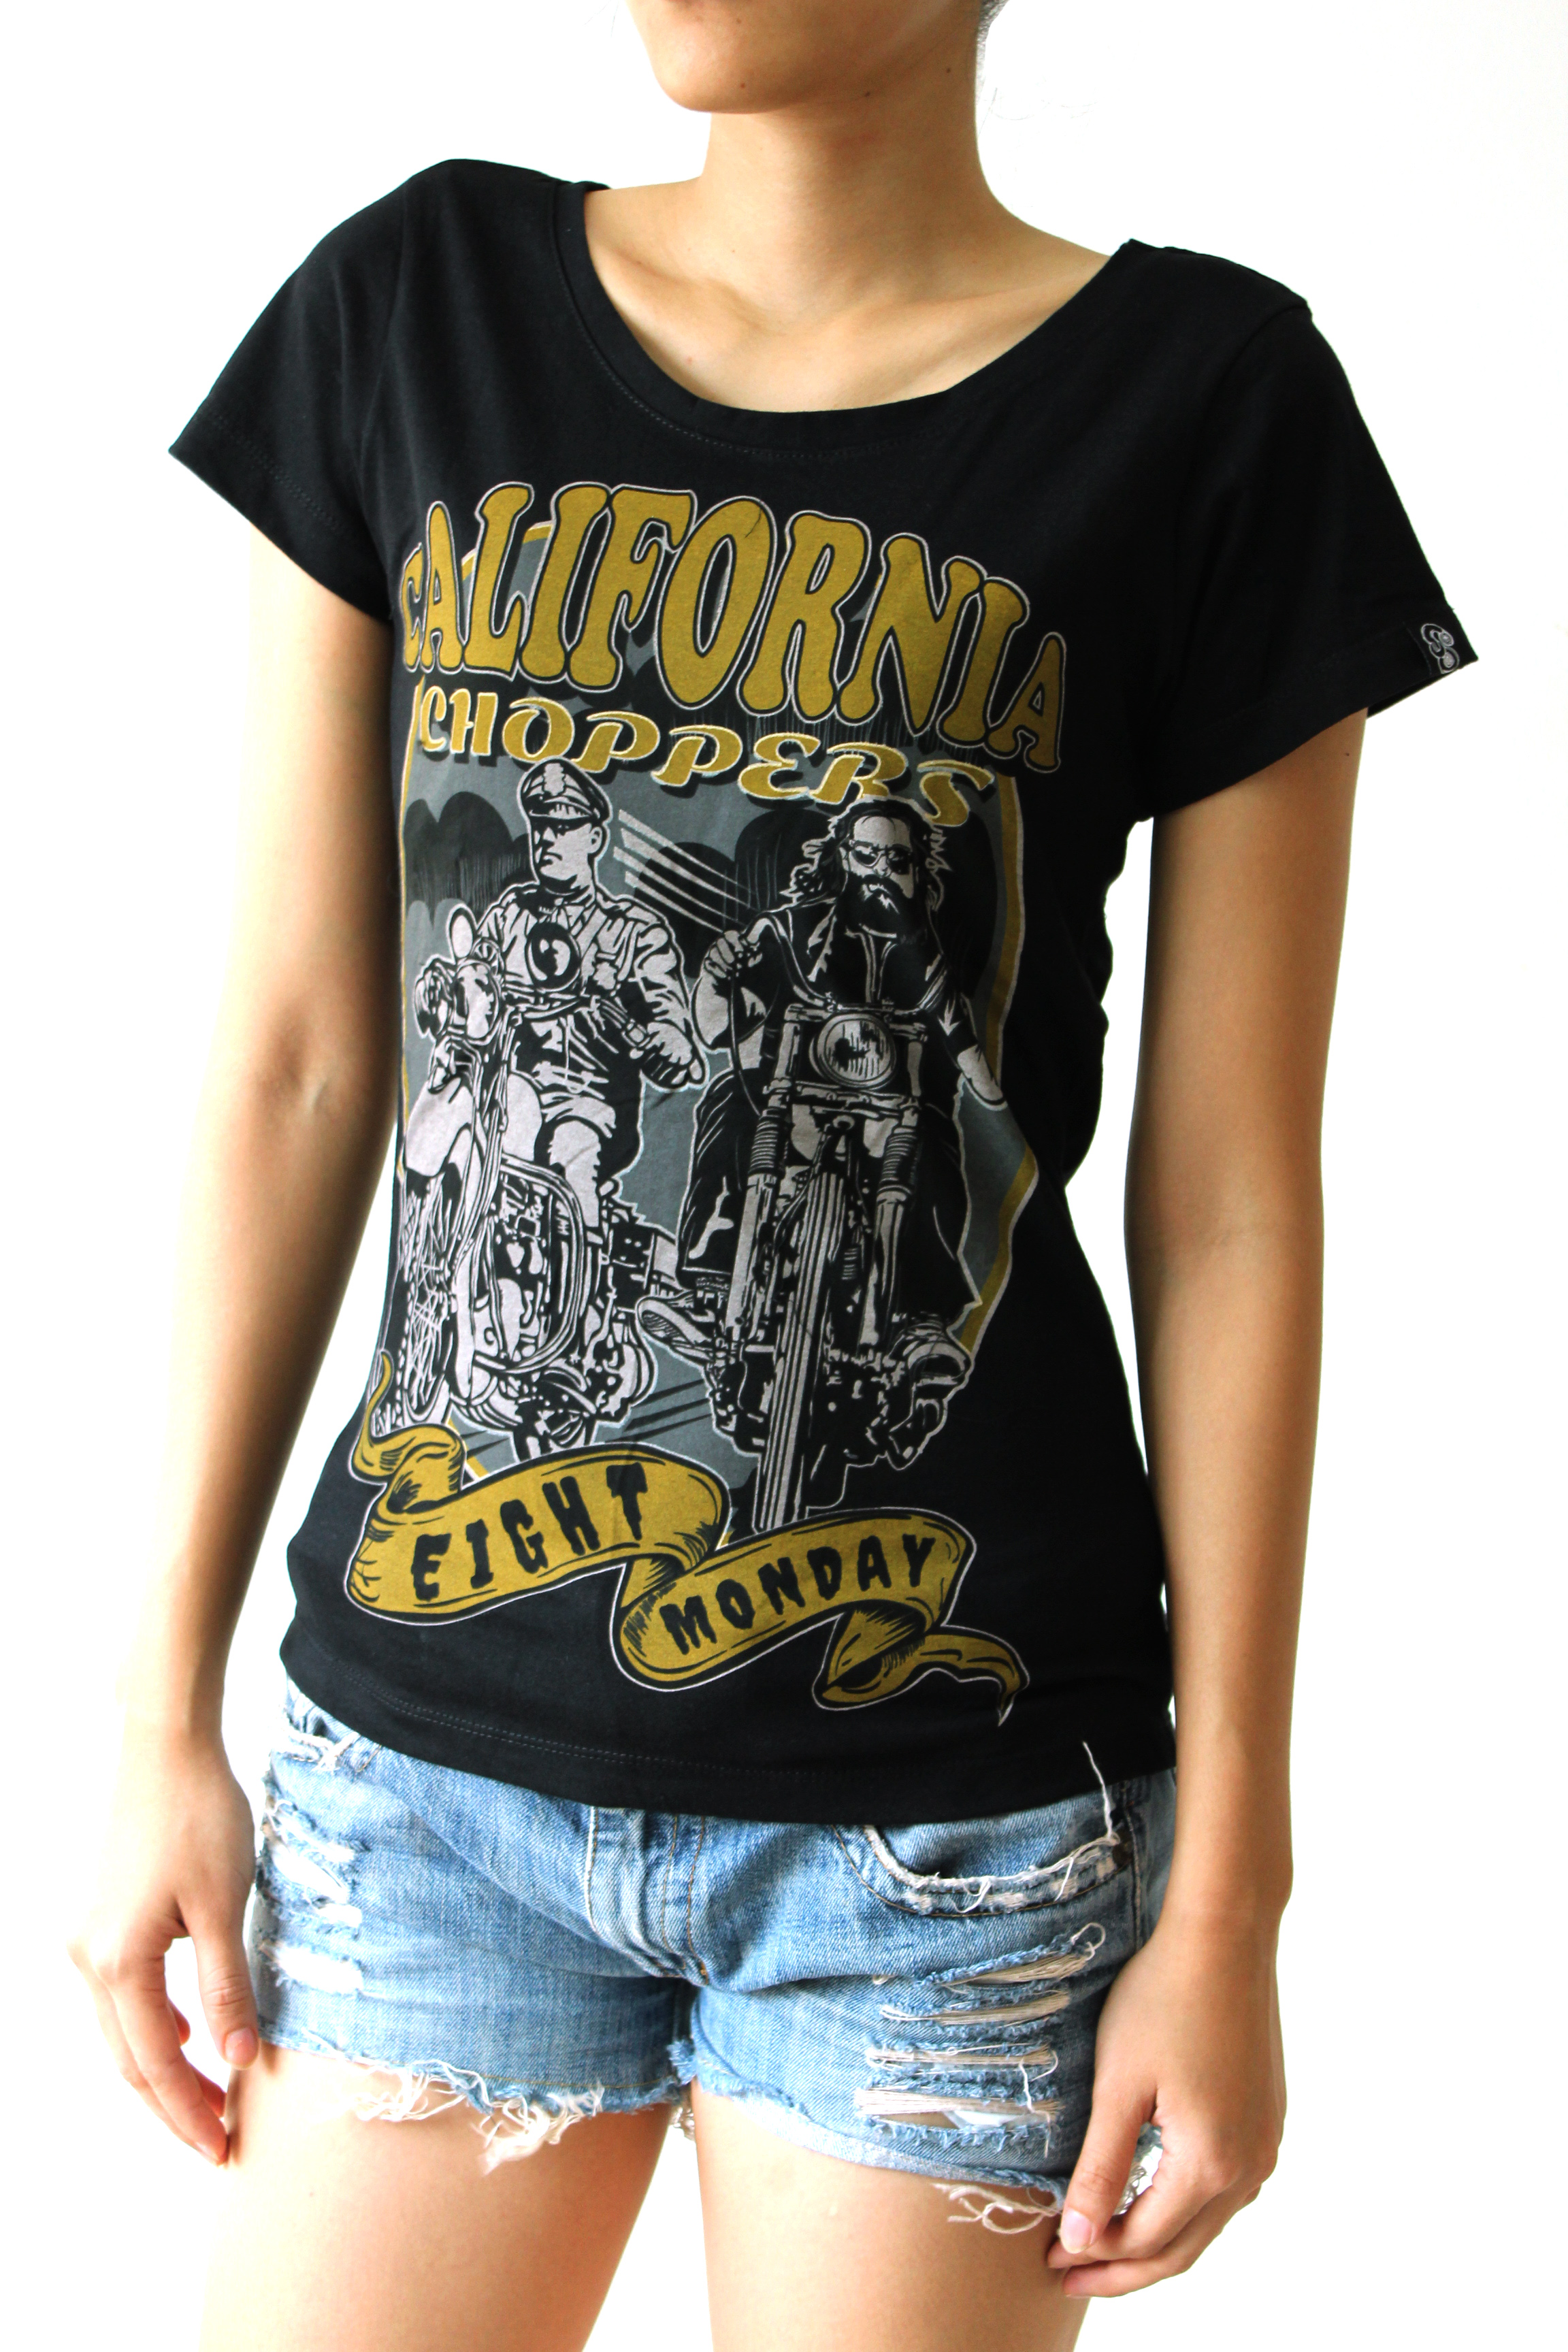 eight_monday_rockabilly_vintage_cafe_racer_west_coast_chopper_motorcycle_24_t_shirts_3.jpg